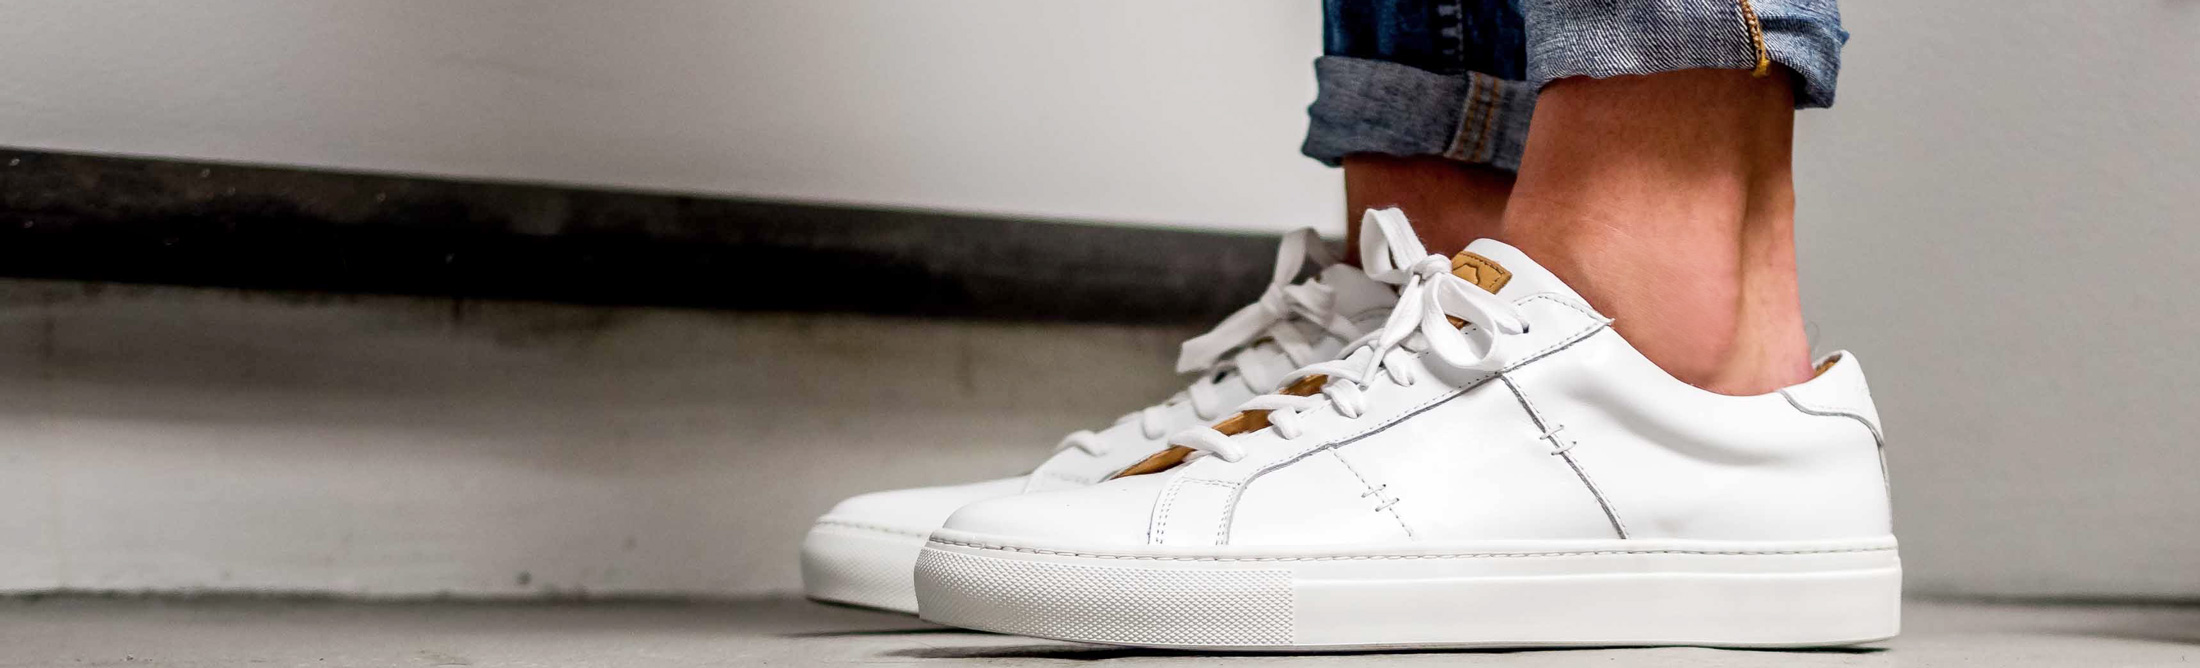 d7505c8d6e Eight Leather Sneakers to Buy Now and Wear Through Fall - Bloomberg